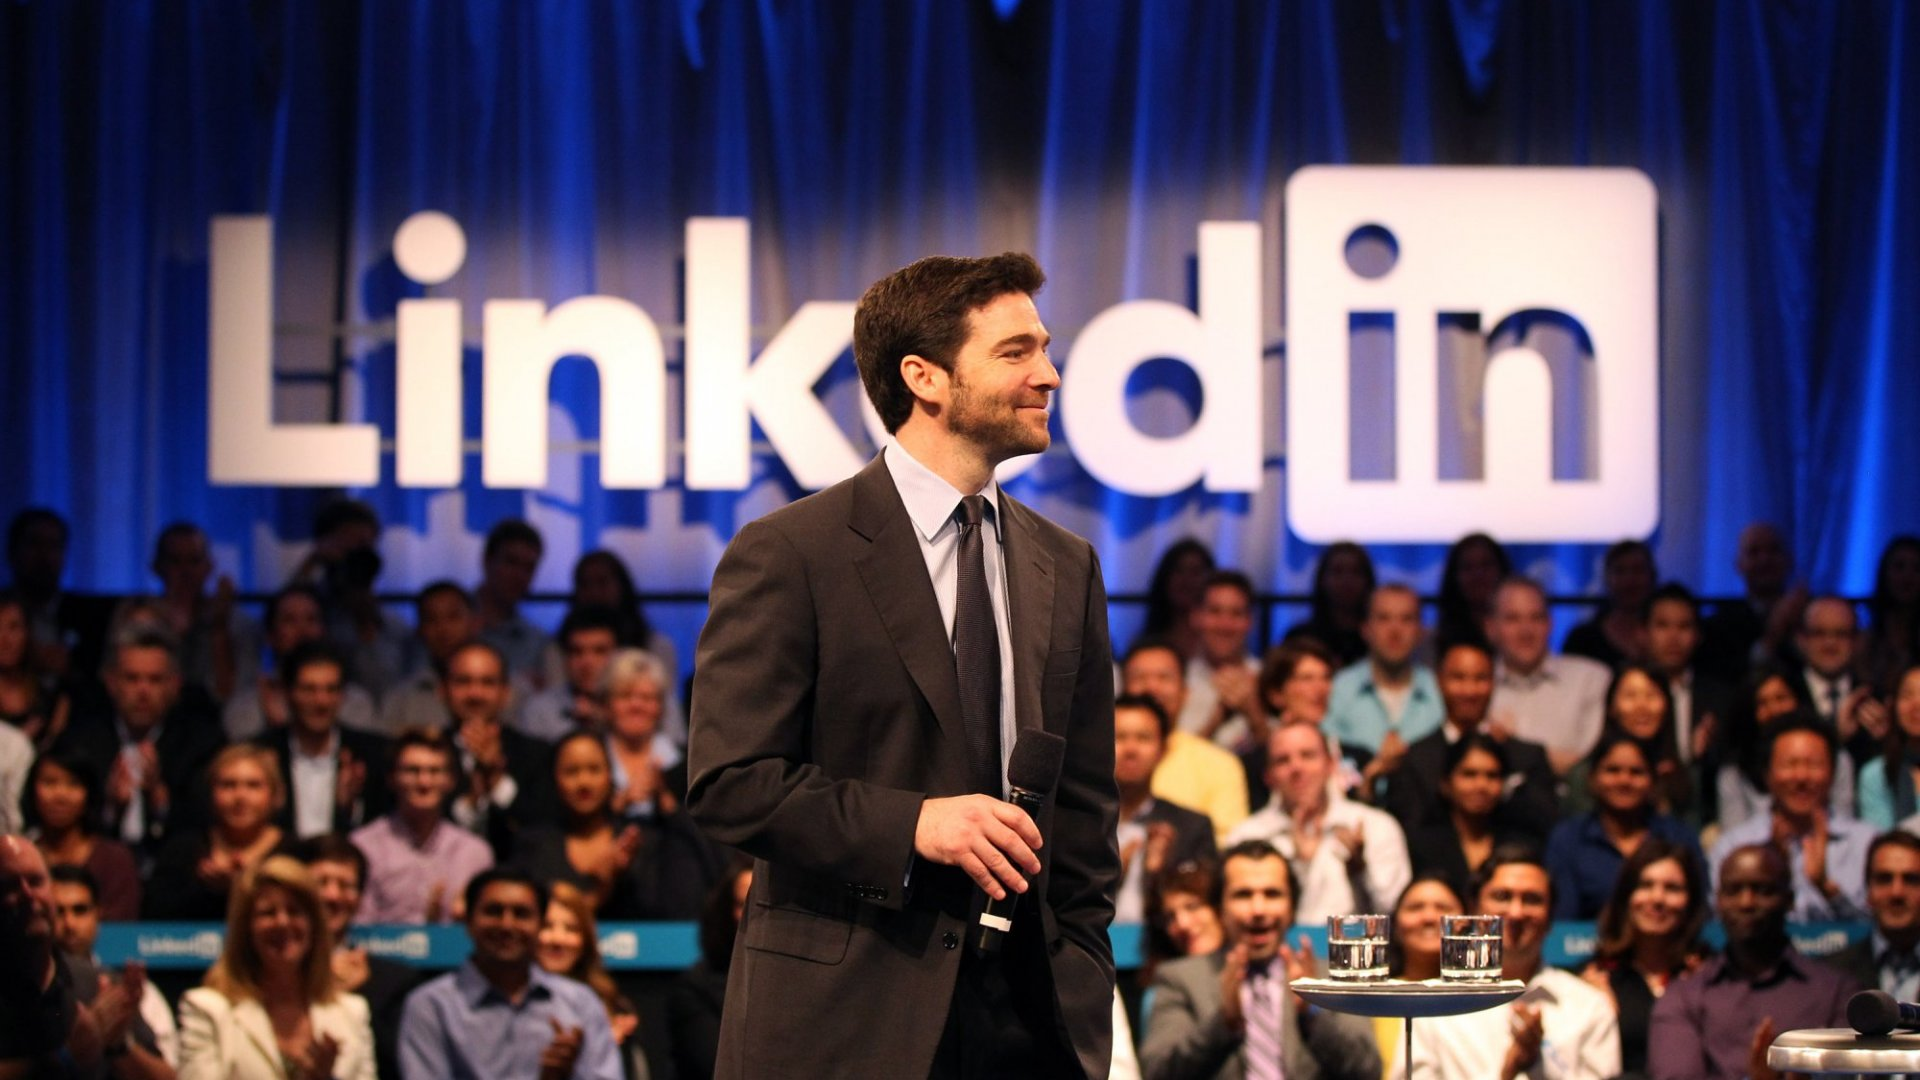 CEO Jeff Weiner's company has quietly launched what could become its next major revenue source.